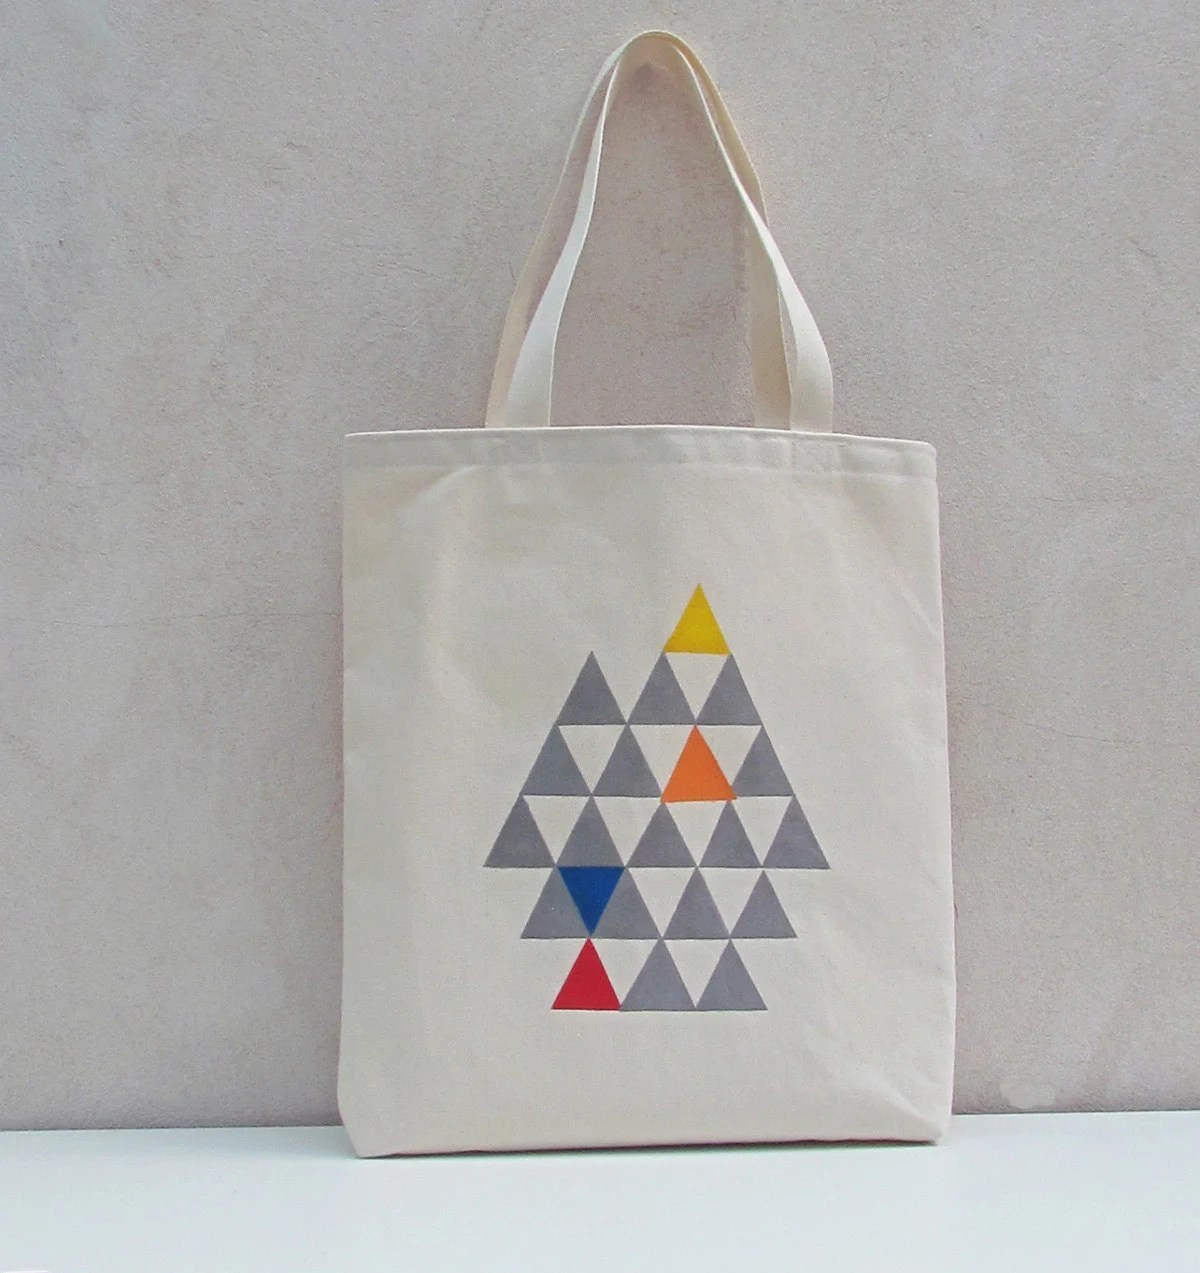 Tote bag canvas cotton with handprinted triangles - handmadeinhighbury